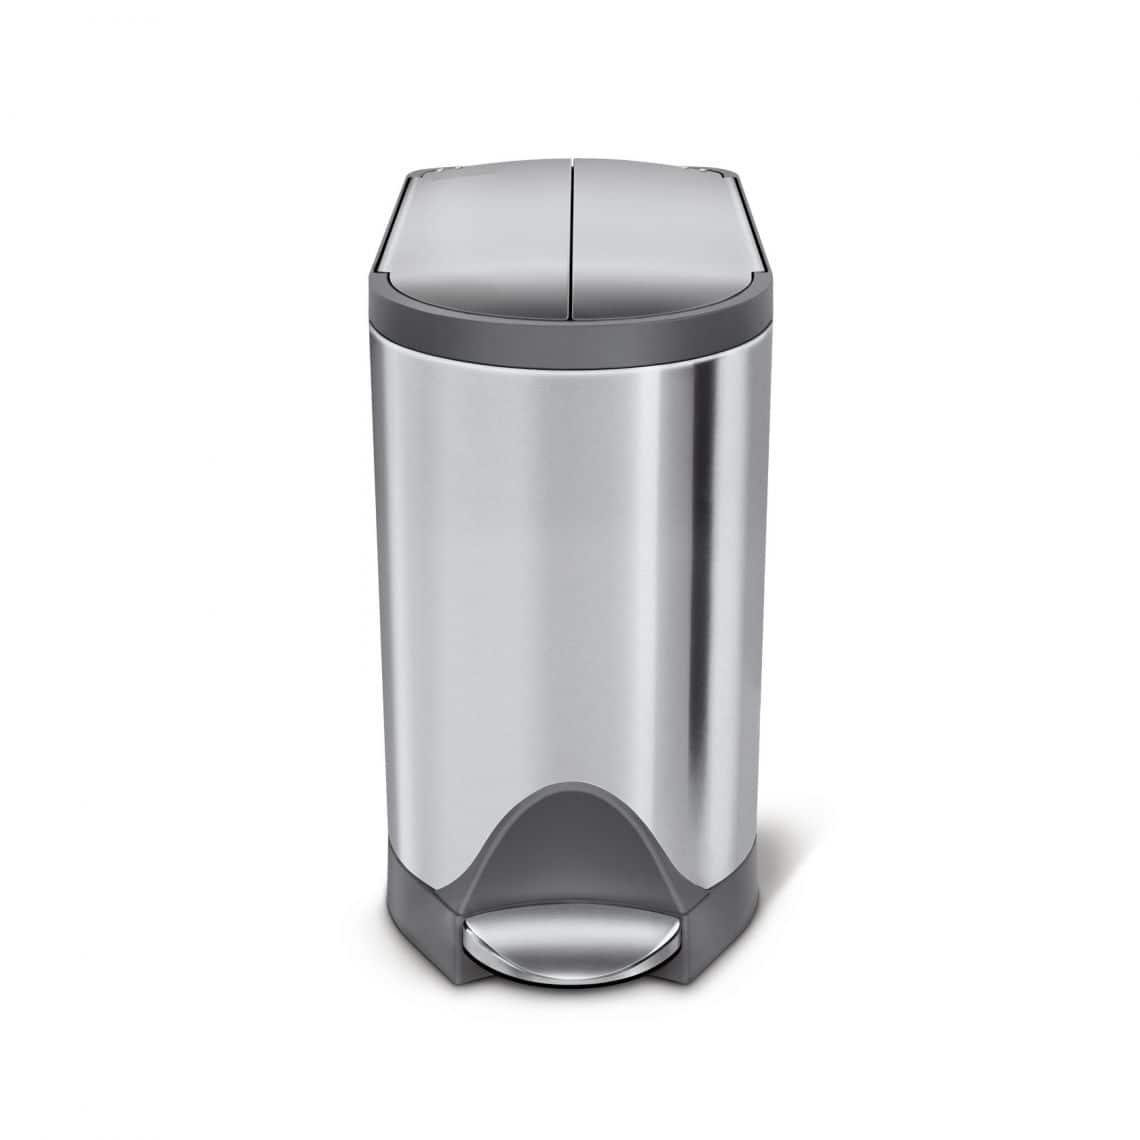 Simplehuman 10L Butterfly step can Brushed Grey trim $30